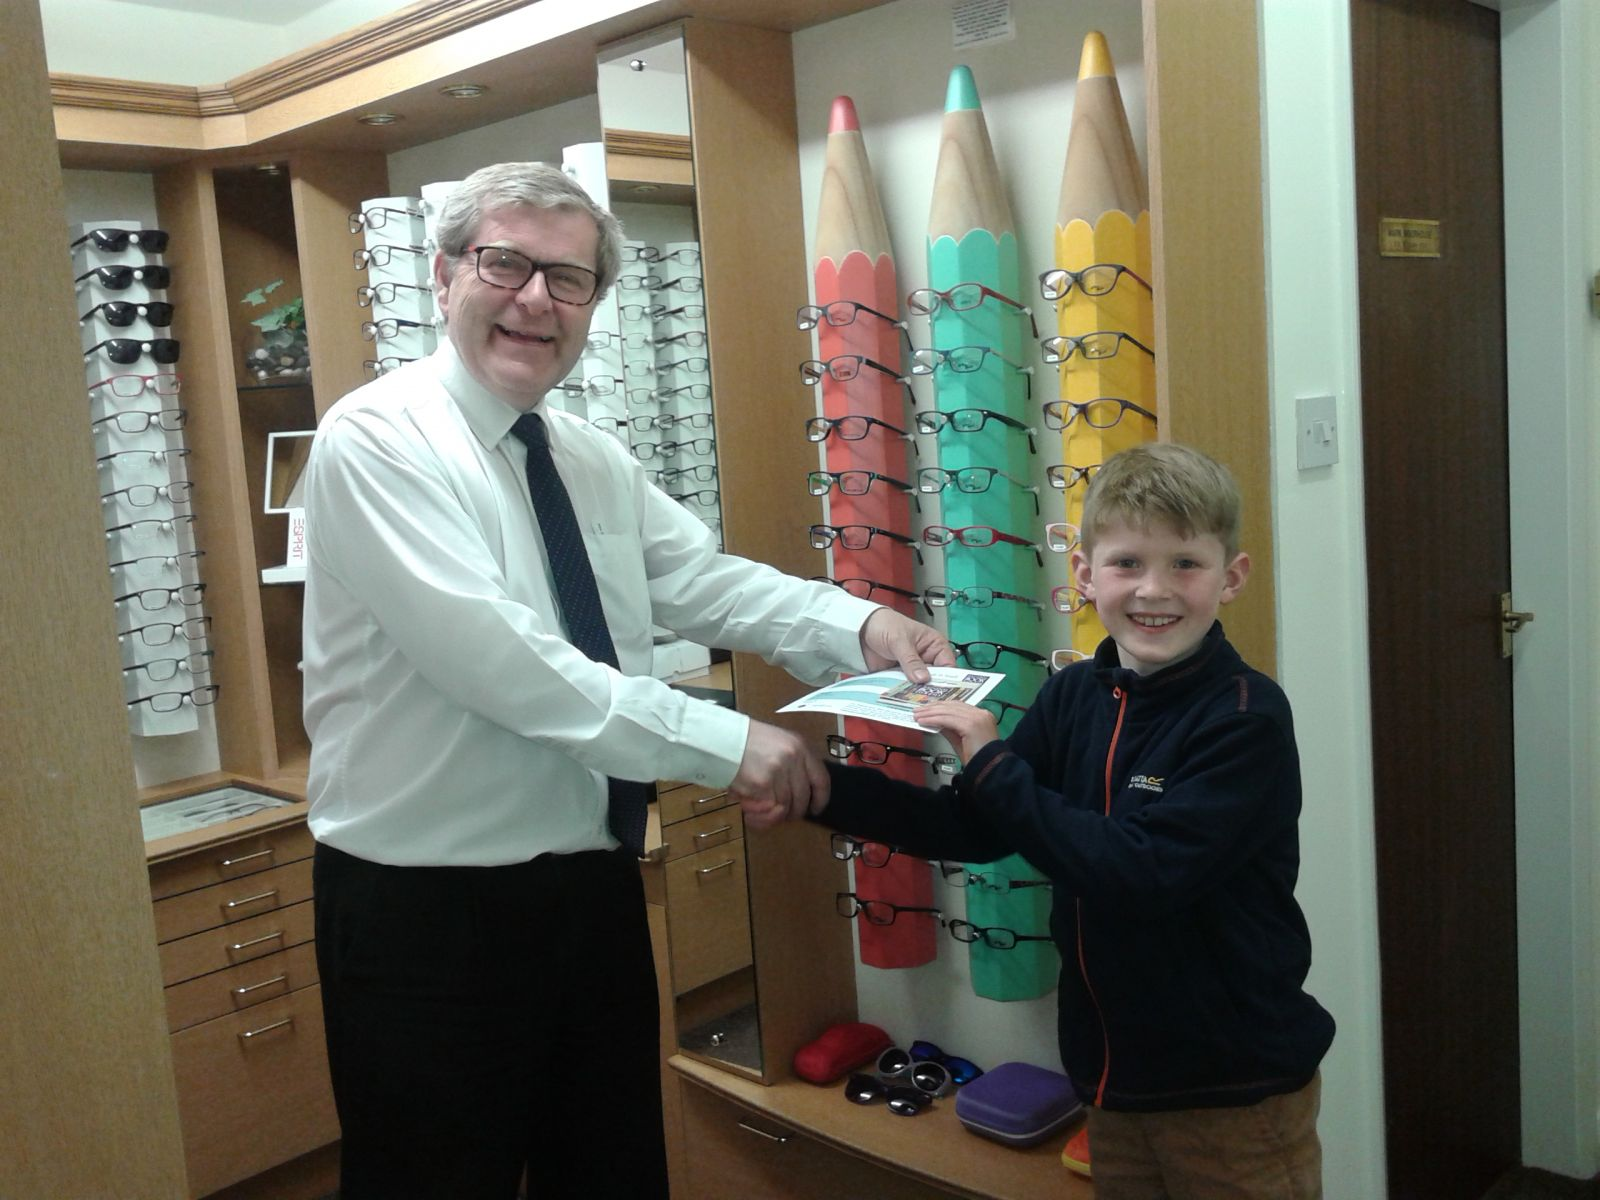 Ian collected his book vouchers from Moorhouse Opticians, Tadcaster